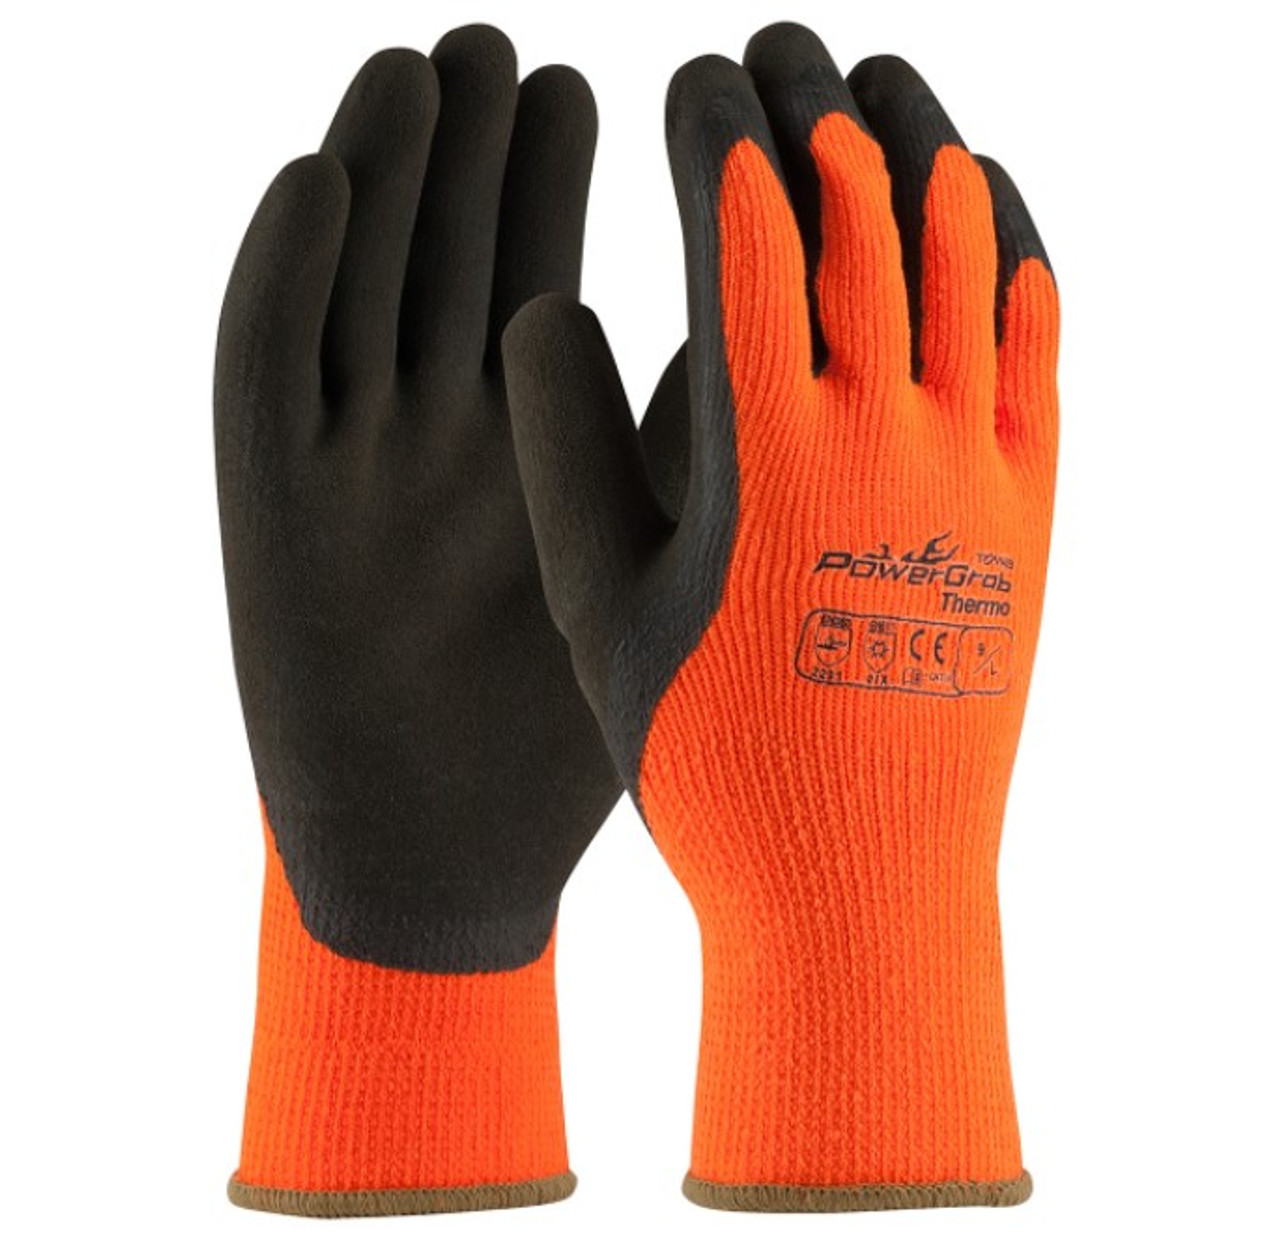 PowerGrab Thermo Gloves